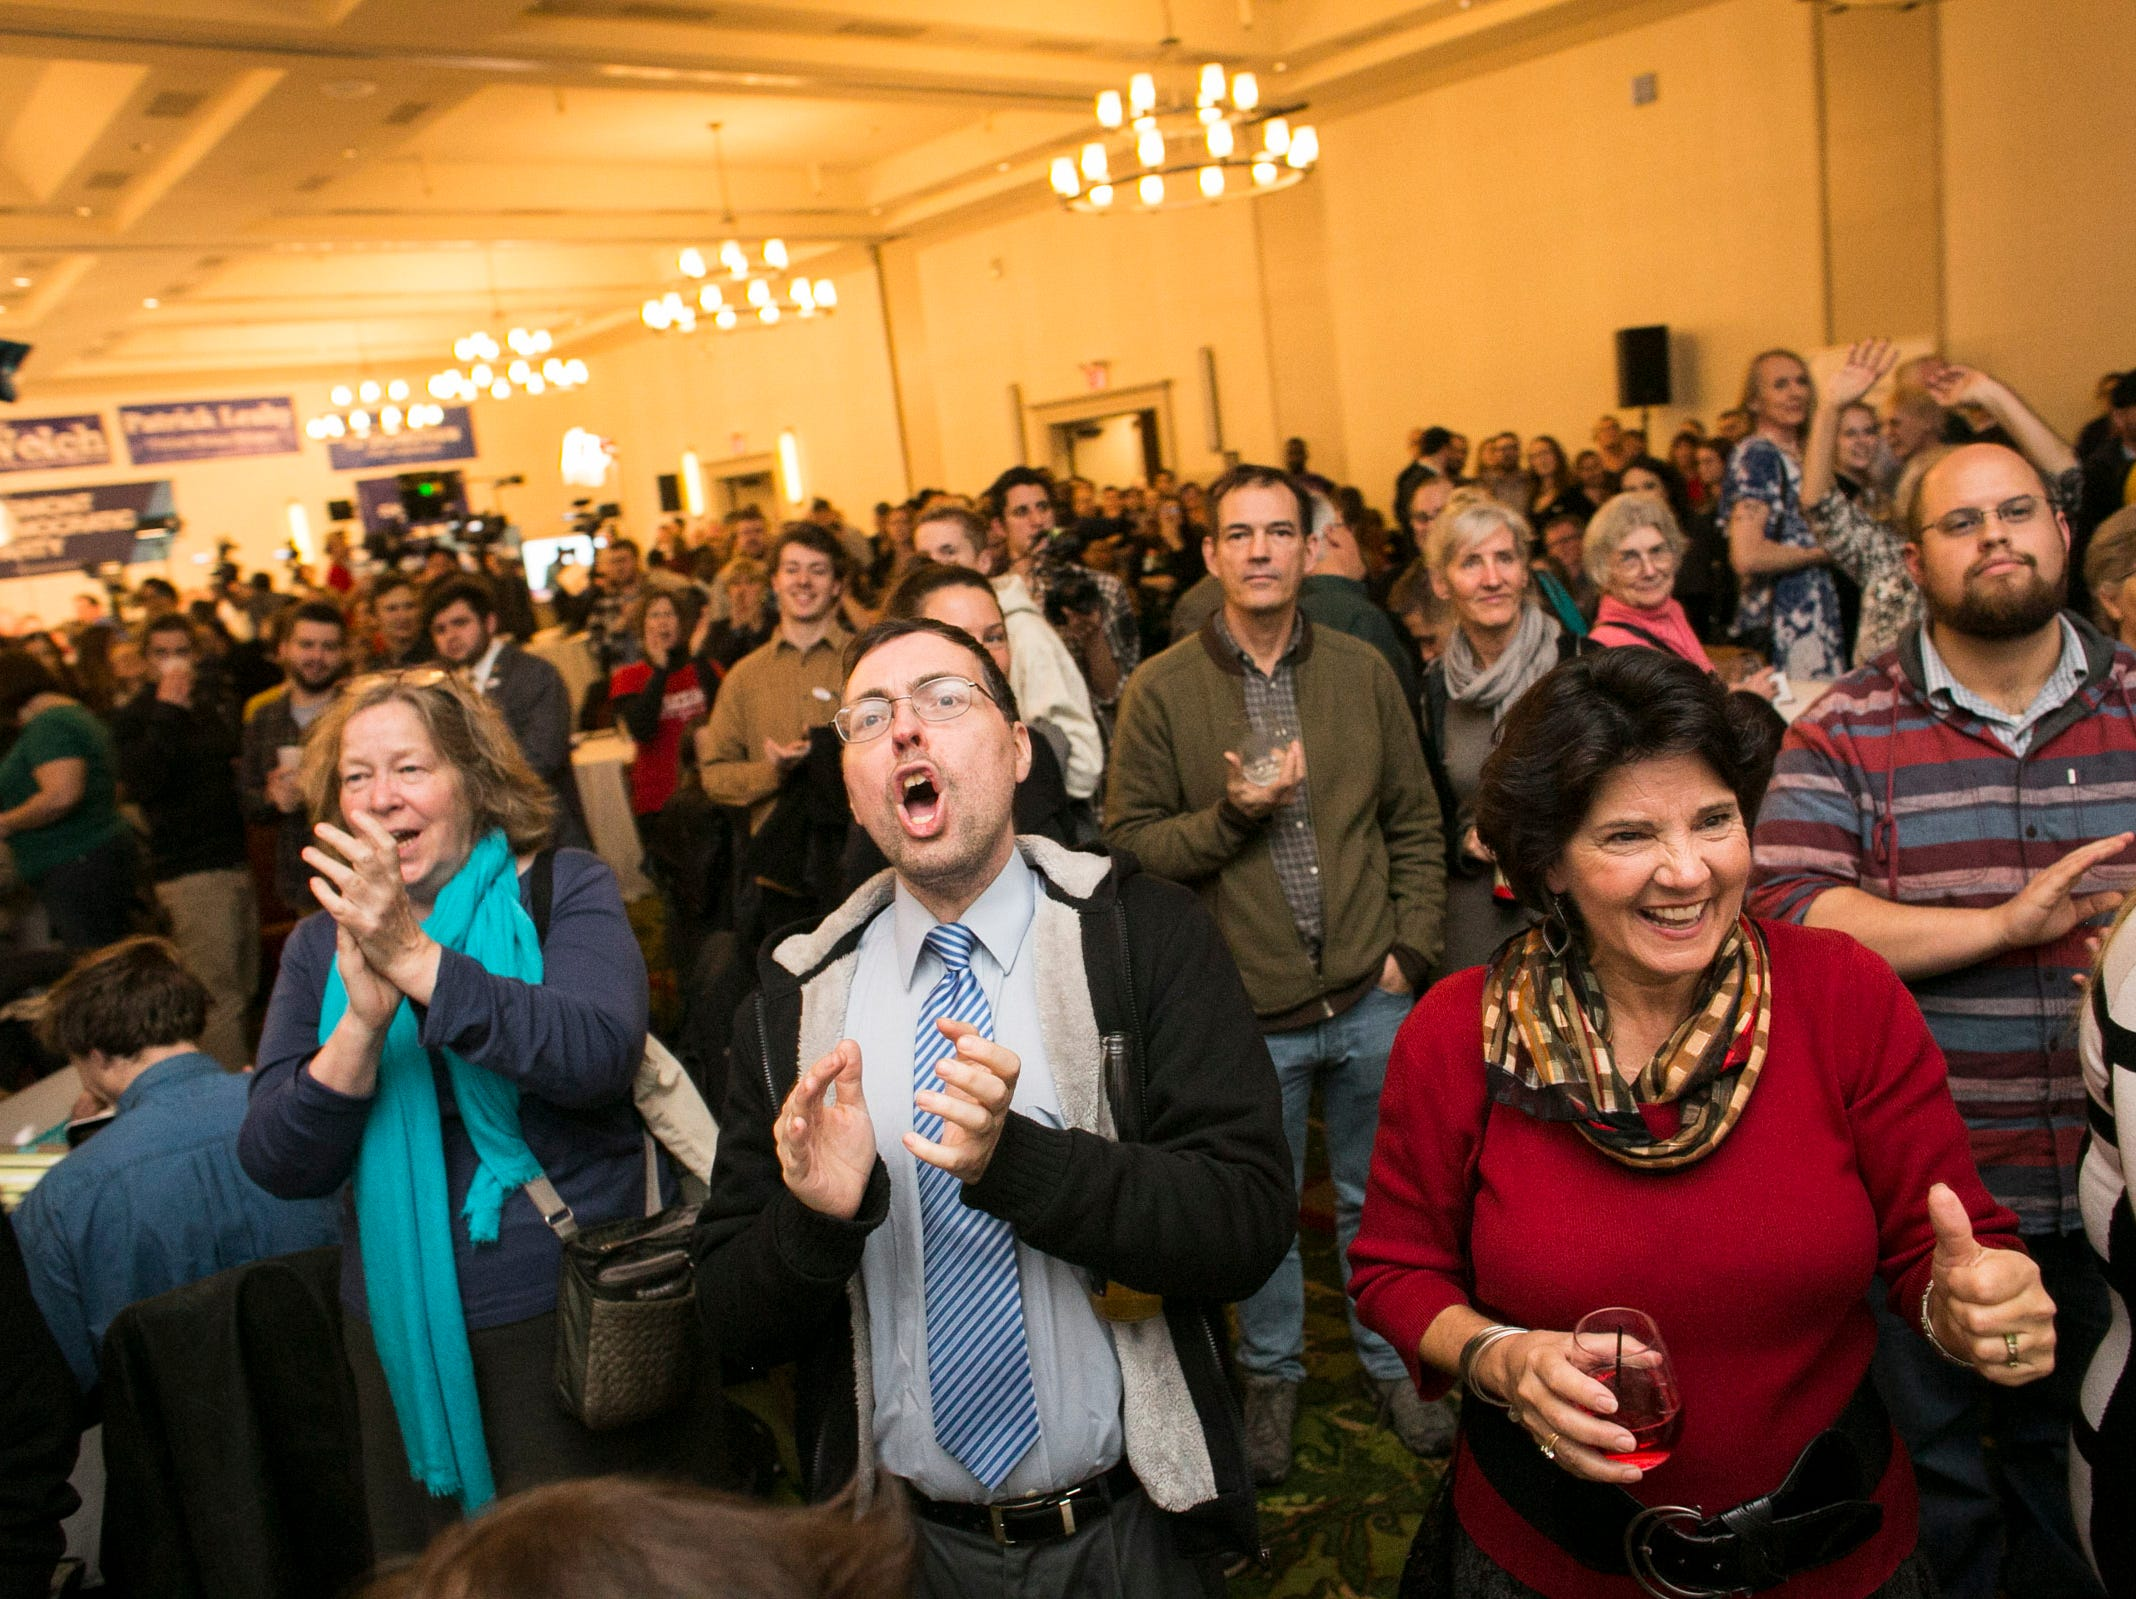 Onlookers cheer as national midterm election results come in at the Hilton in Burlington, Vermont on Tuesday, November 6, 2018.